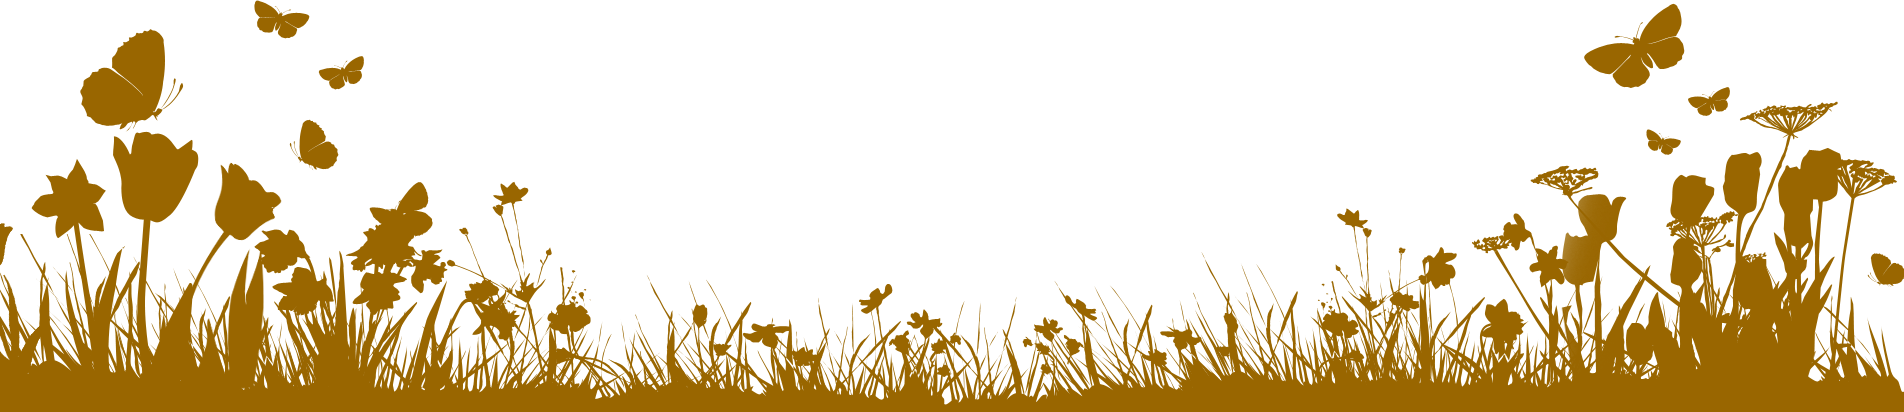 borders for free. Border design png